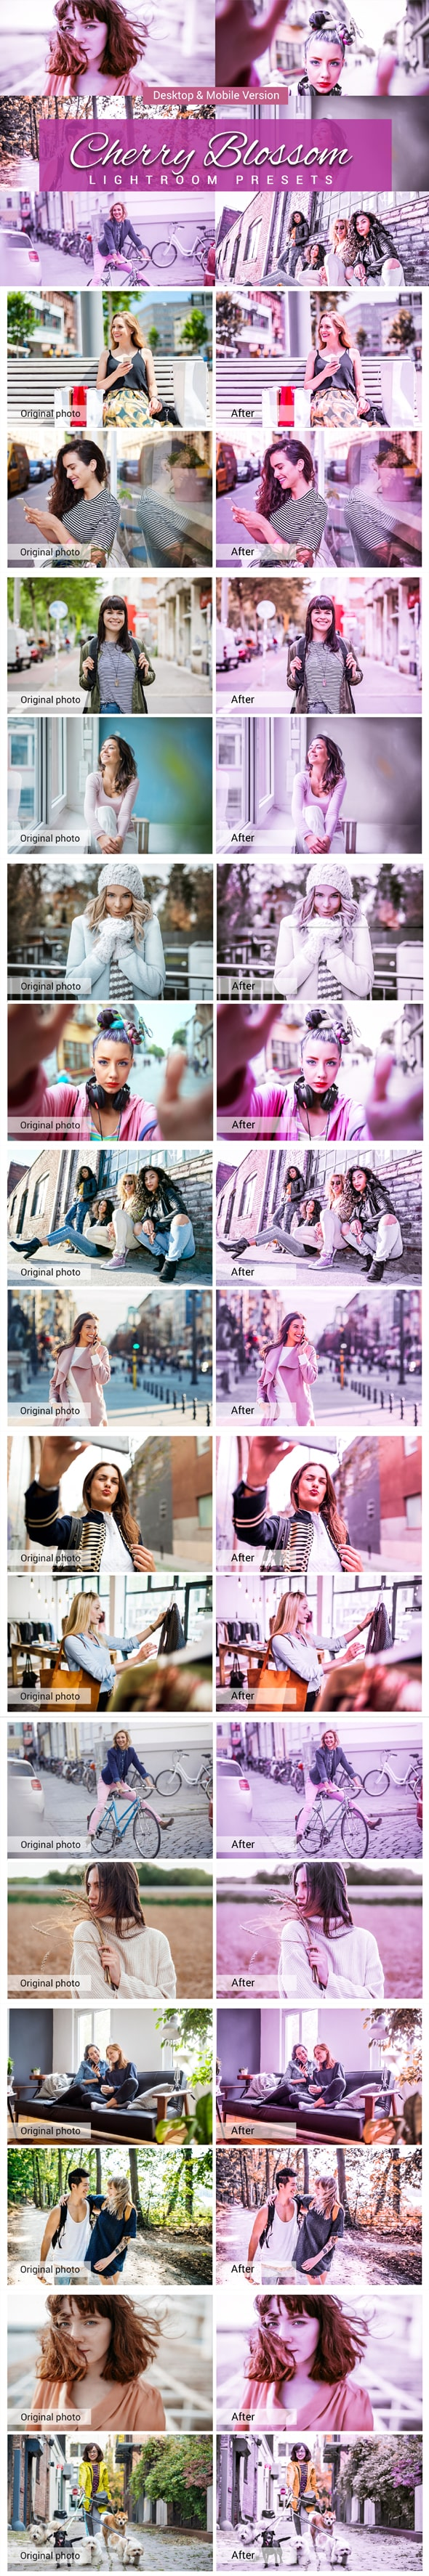 7500 New Complete Bundle Presets Lightroom, Photoshop Actions and Cinematic LUTs - Cherry Blossom Preview min